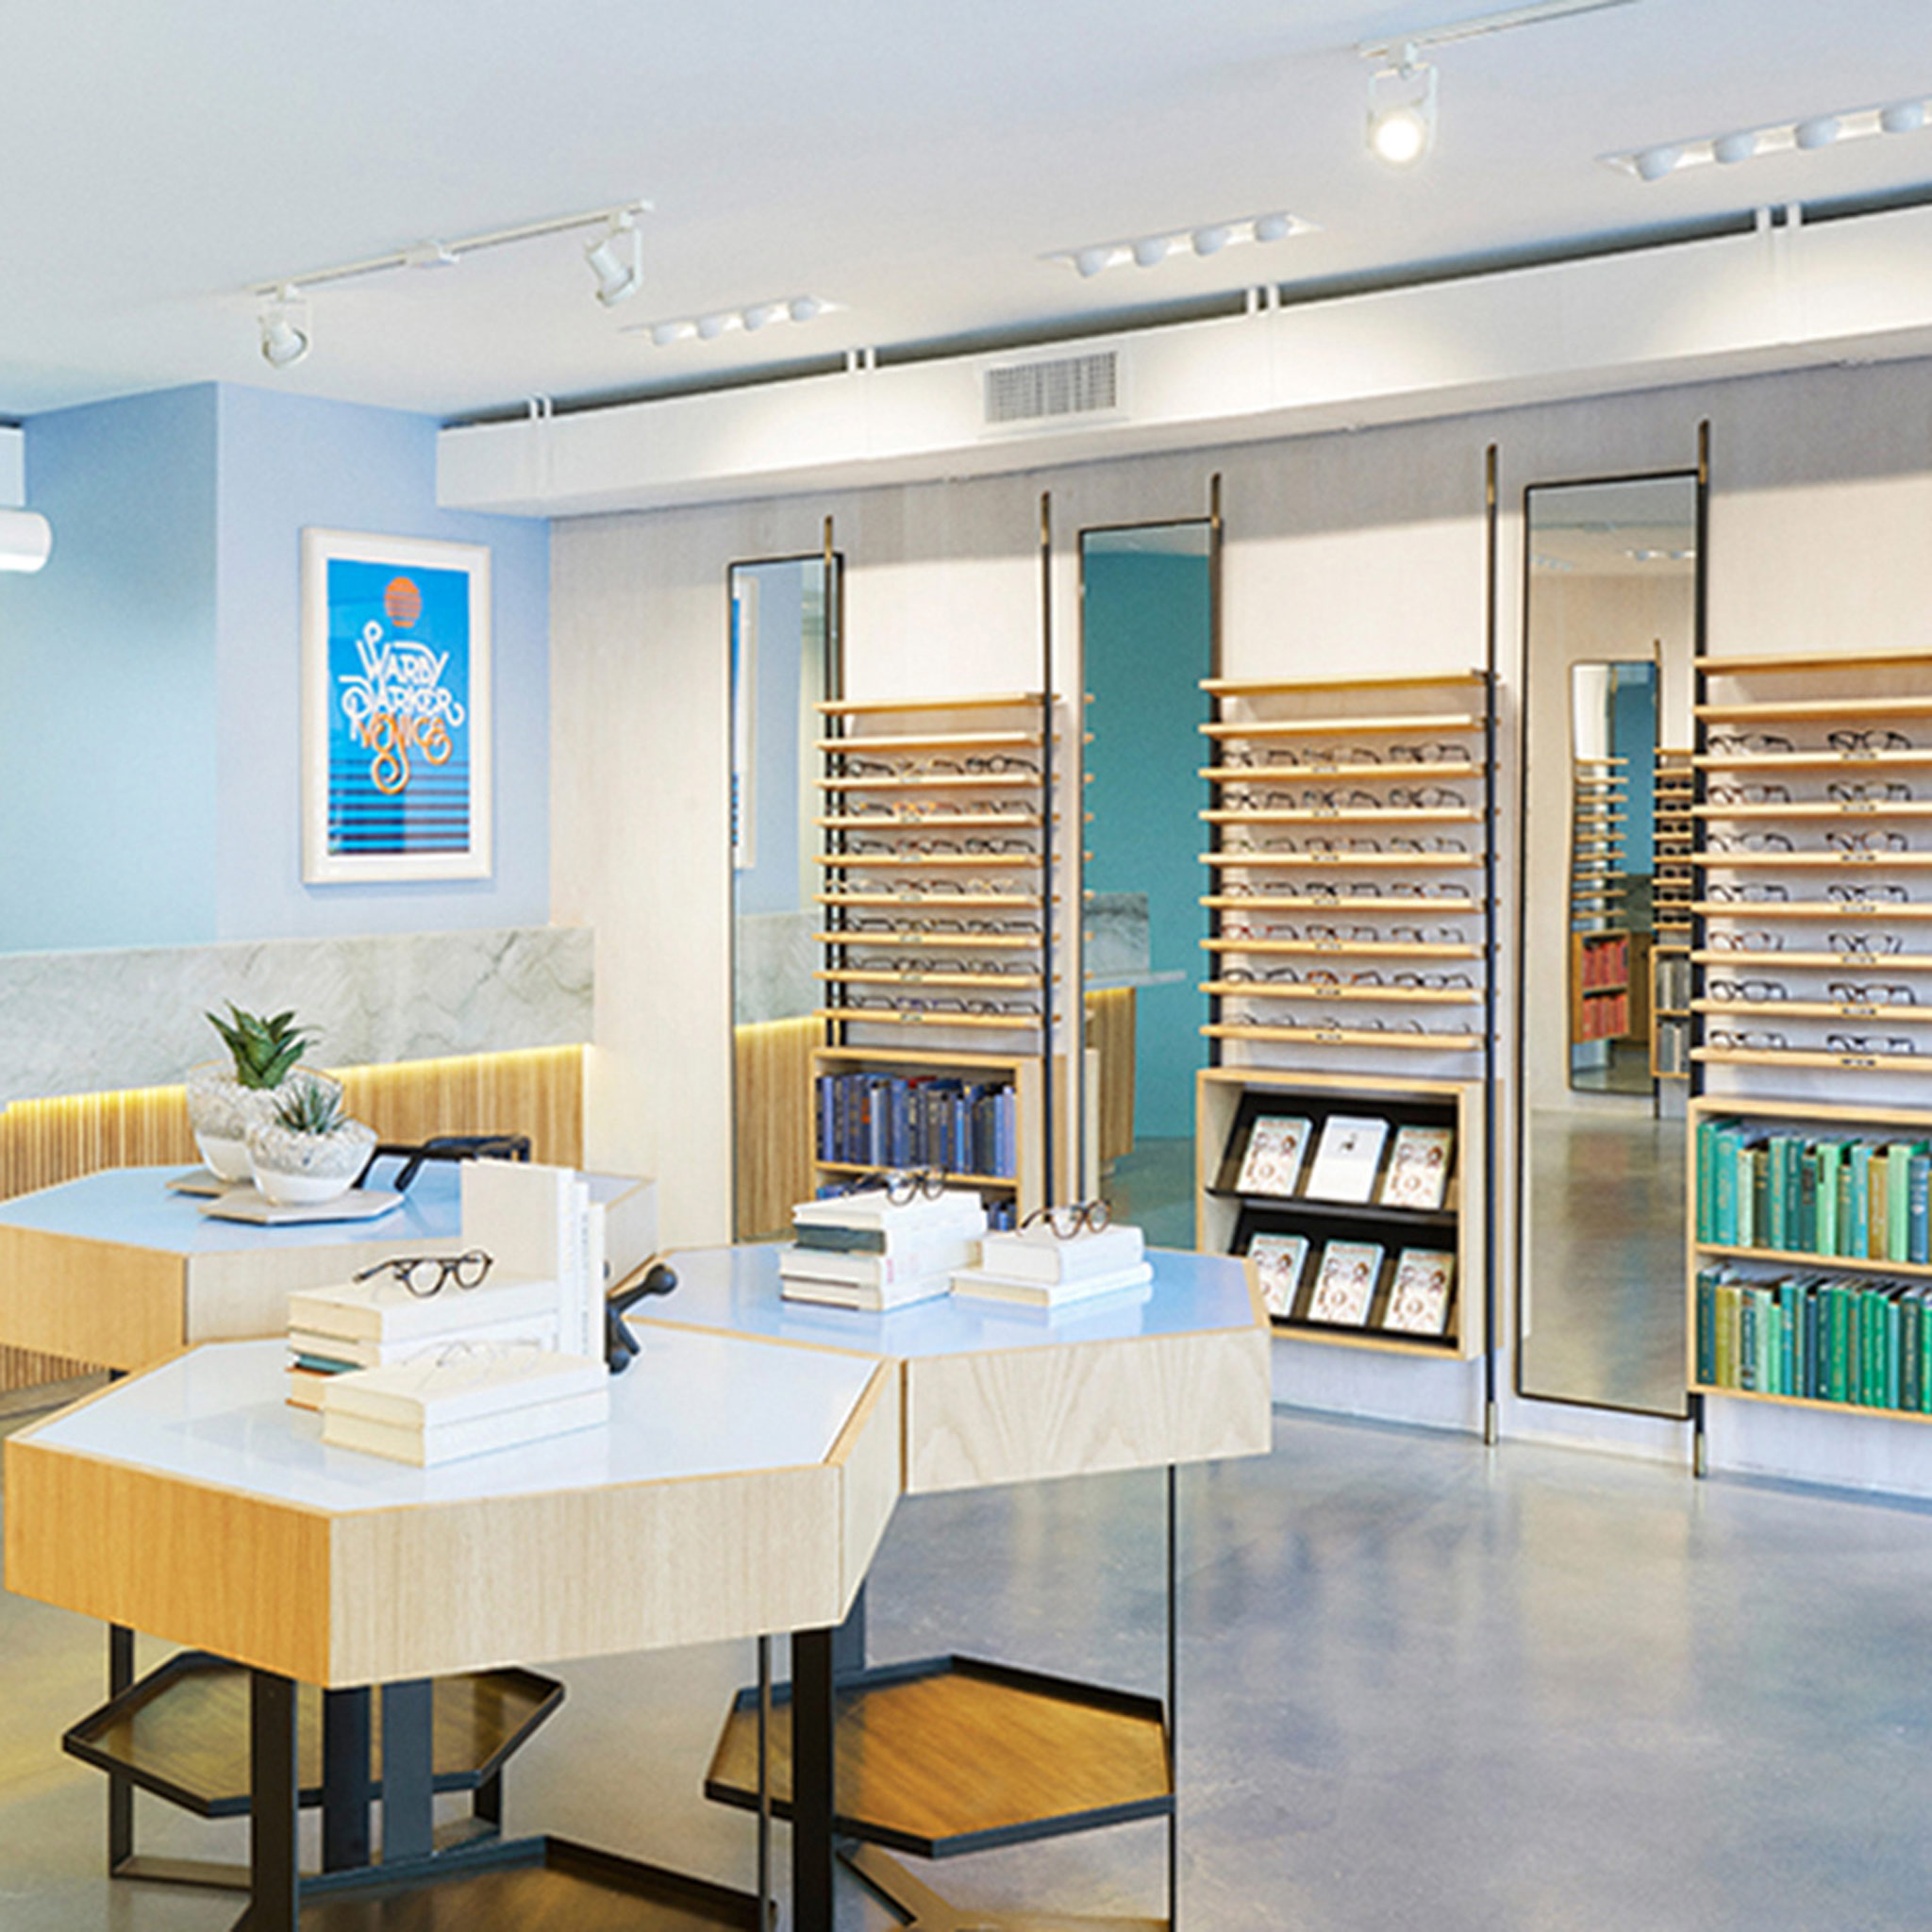 warby-parker-national-3.jpg